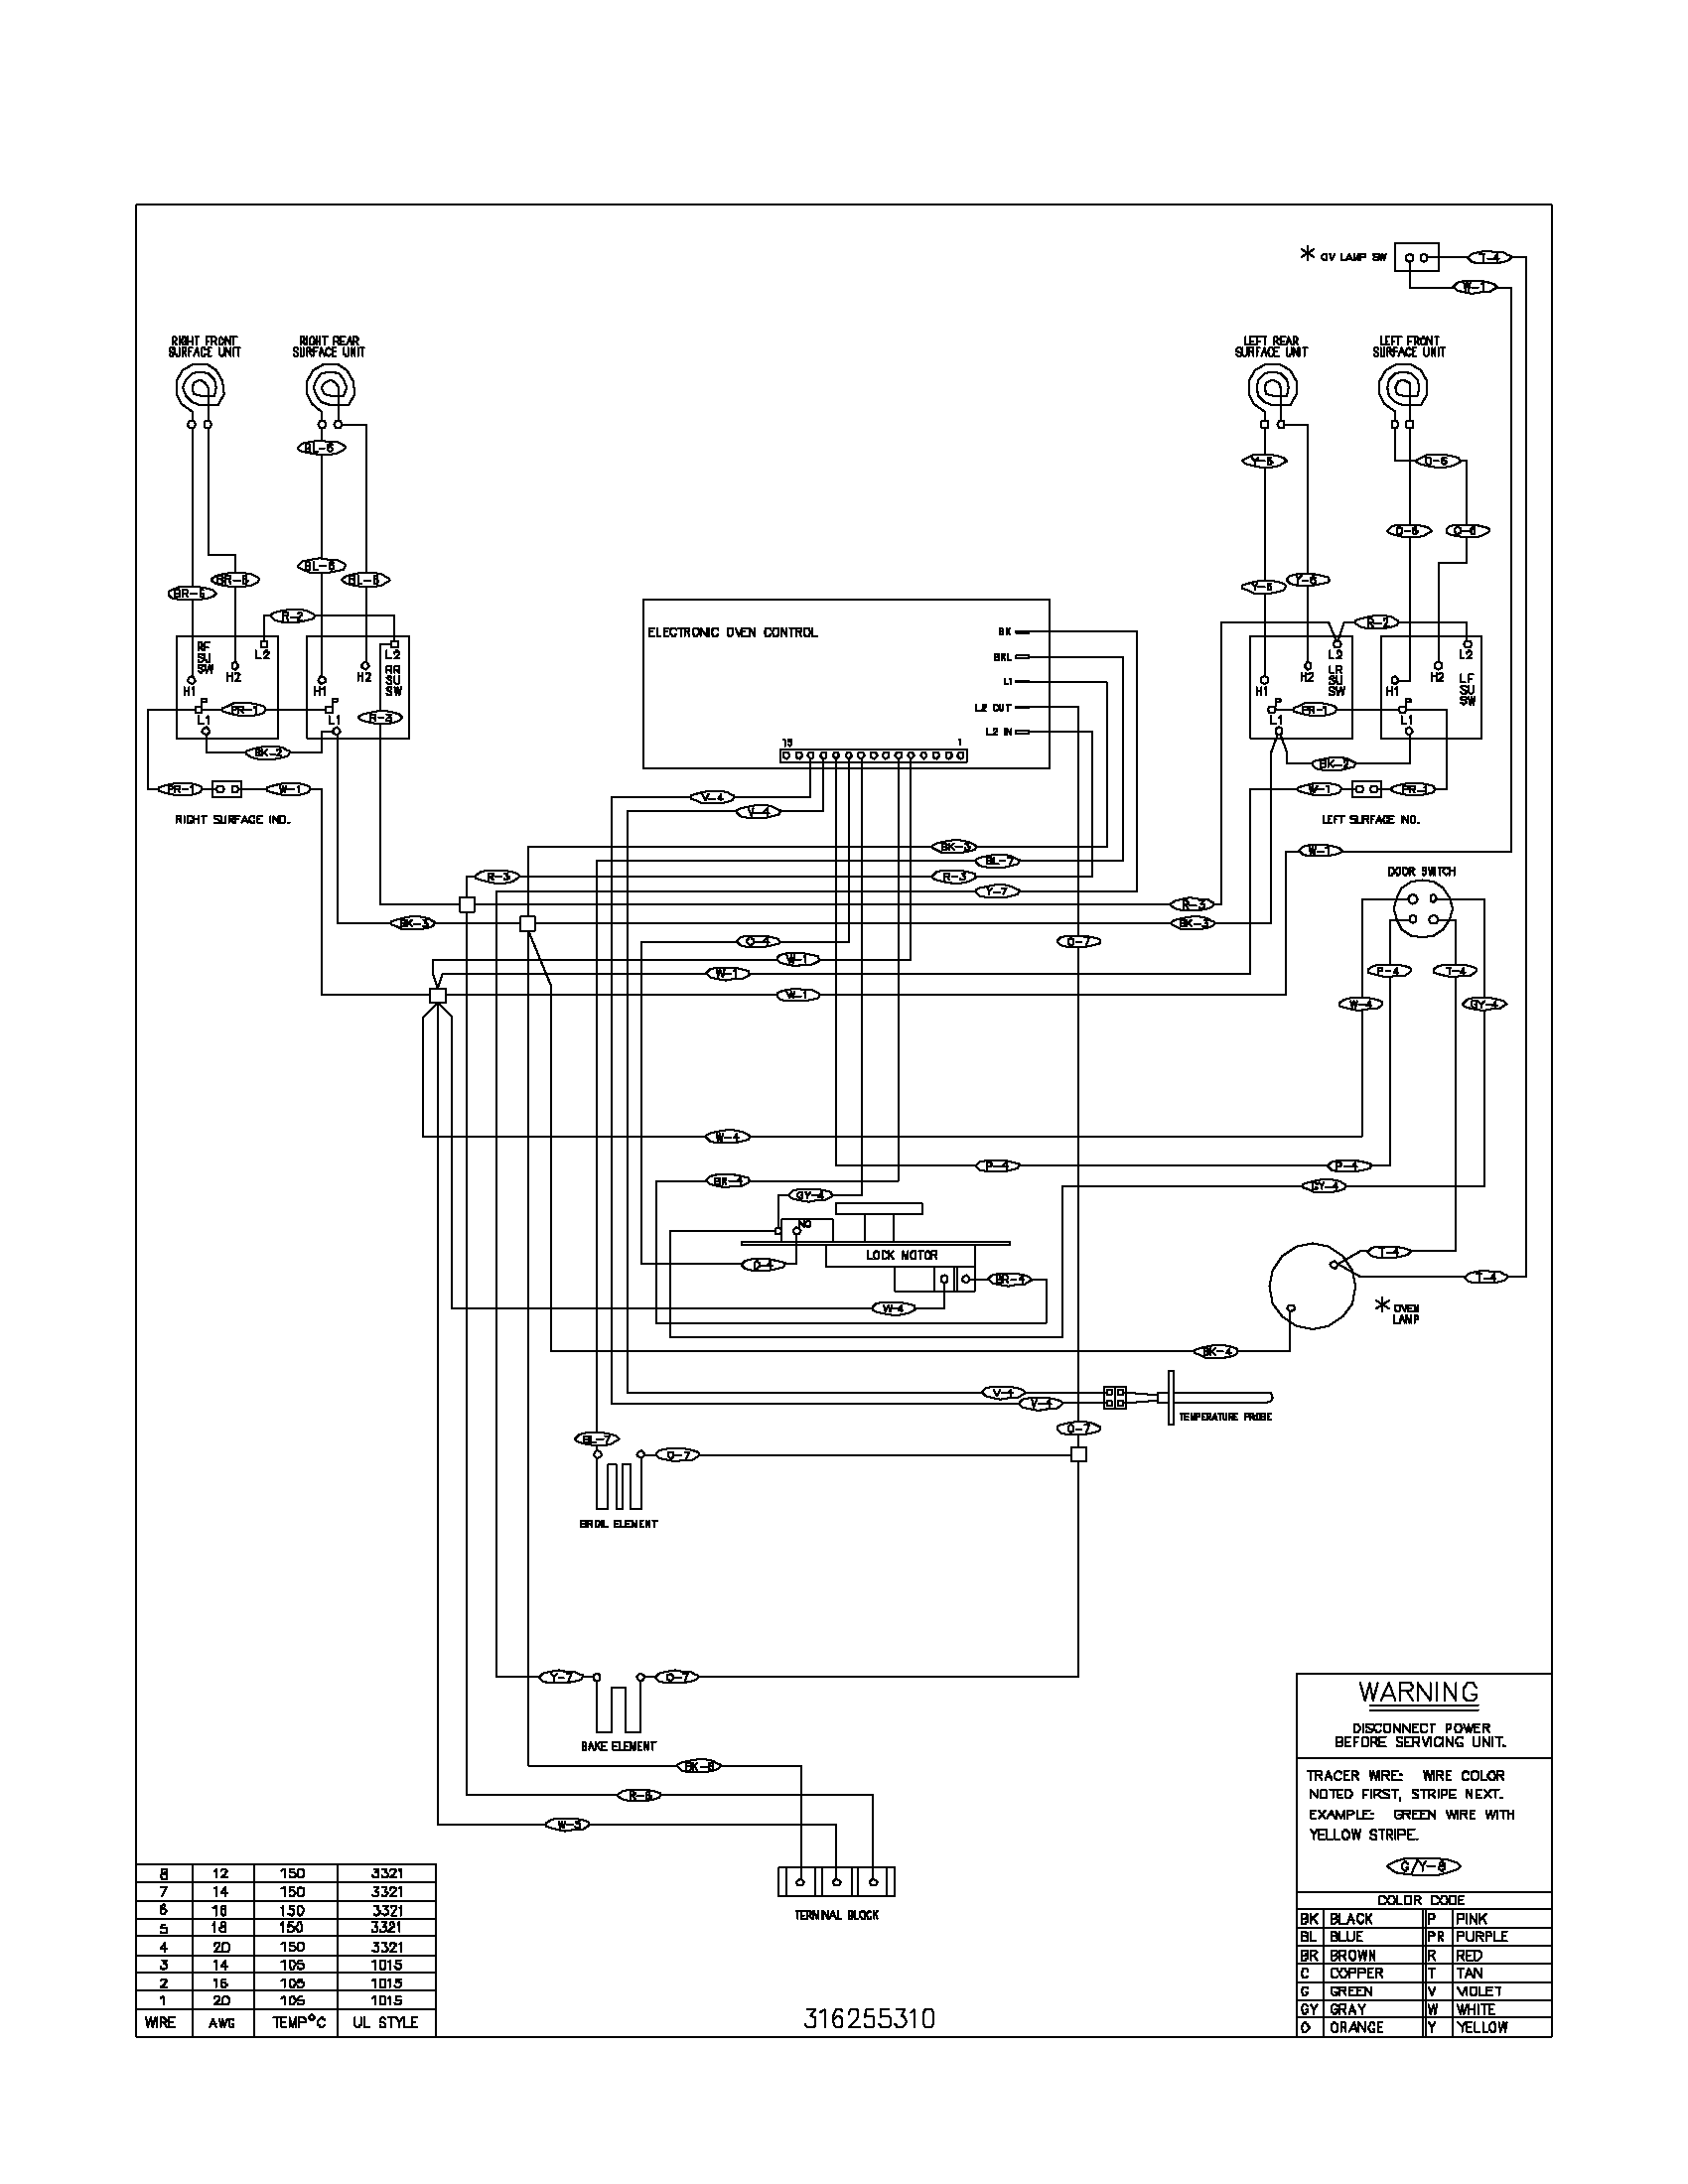 Fabulous Wiring Diagram For Frigidaire Stove Diagram Data Schema Wiring Cloud Strefoxcilixyz